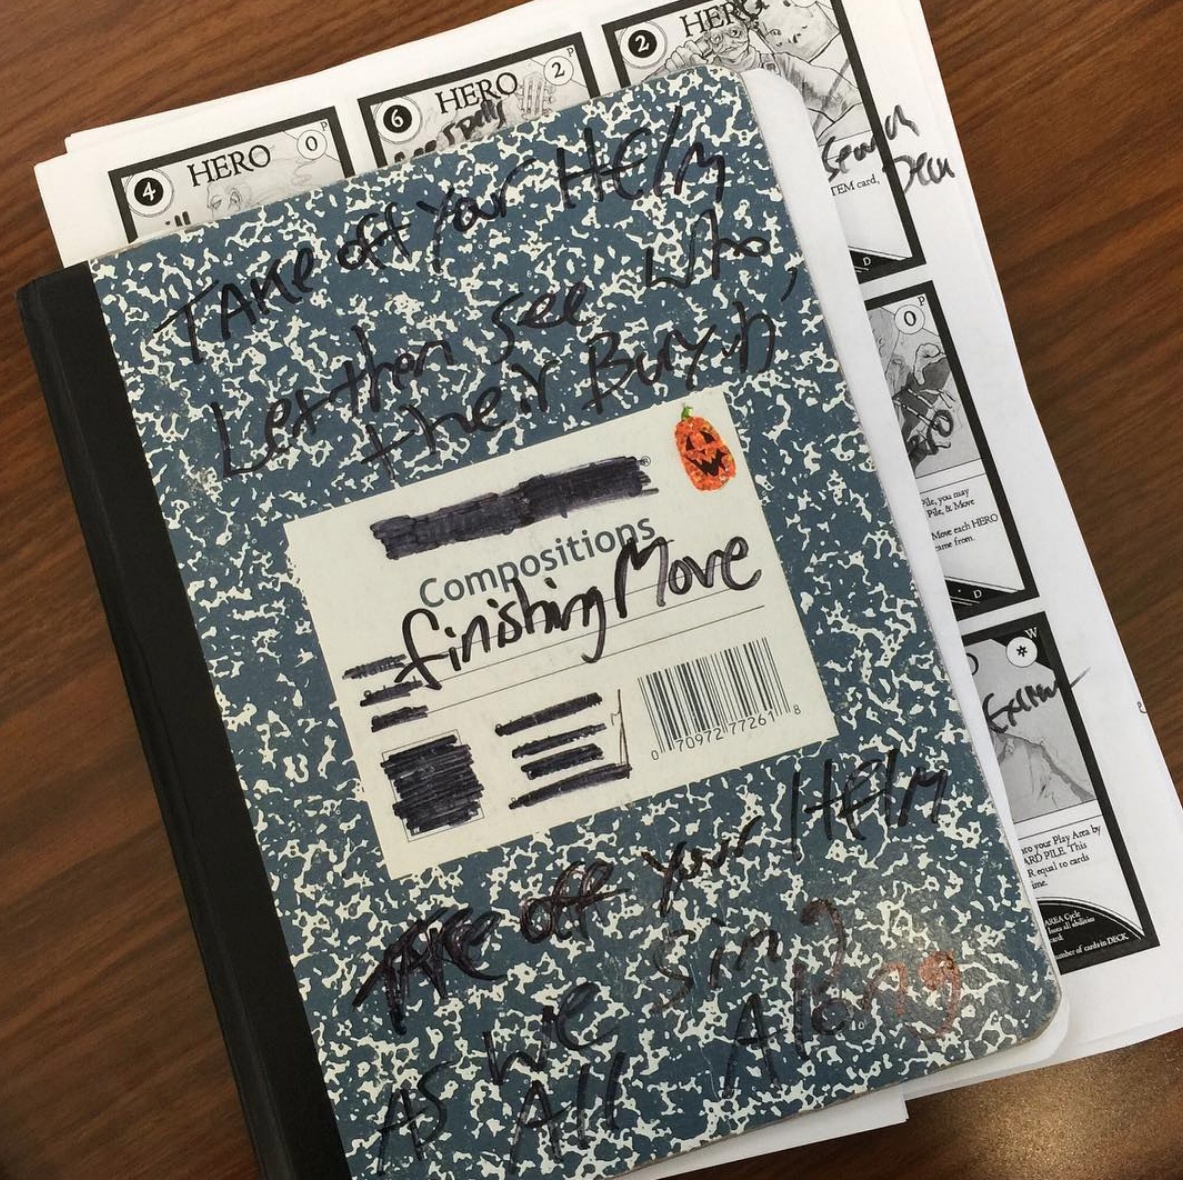 2015 Depression Era notebook used for songs and game design (EPIOCH cards pictured)